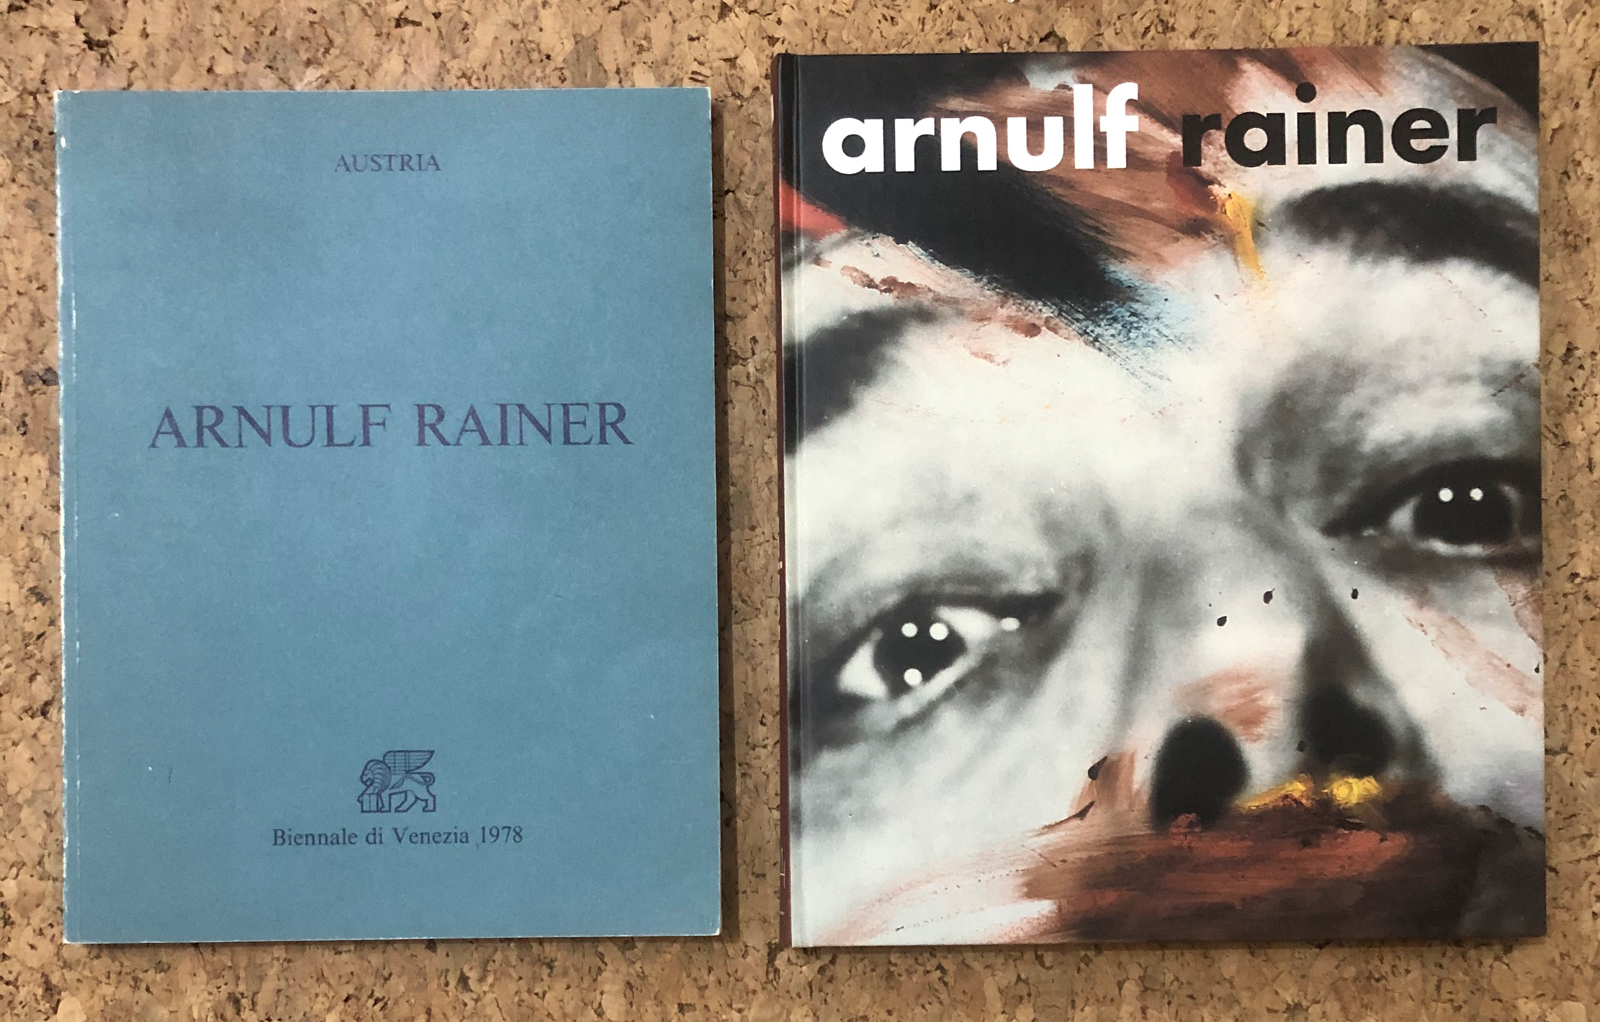 ARNULF RAINER - Lotto unico di 2 cataloghi